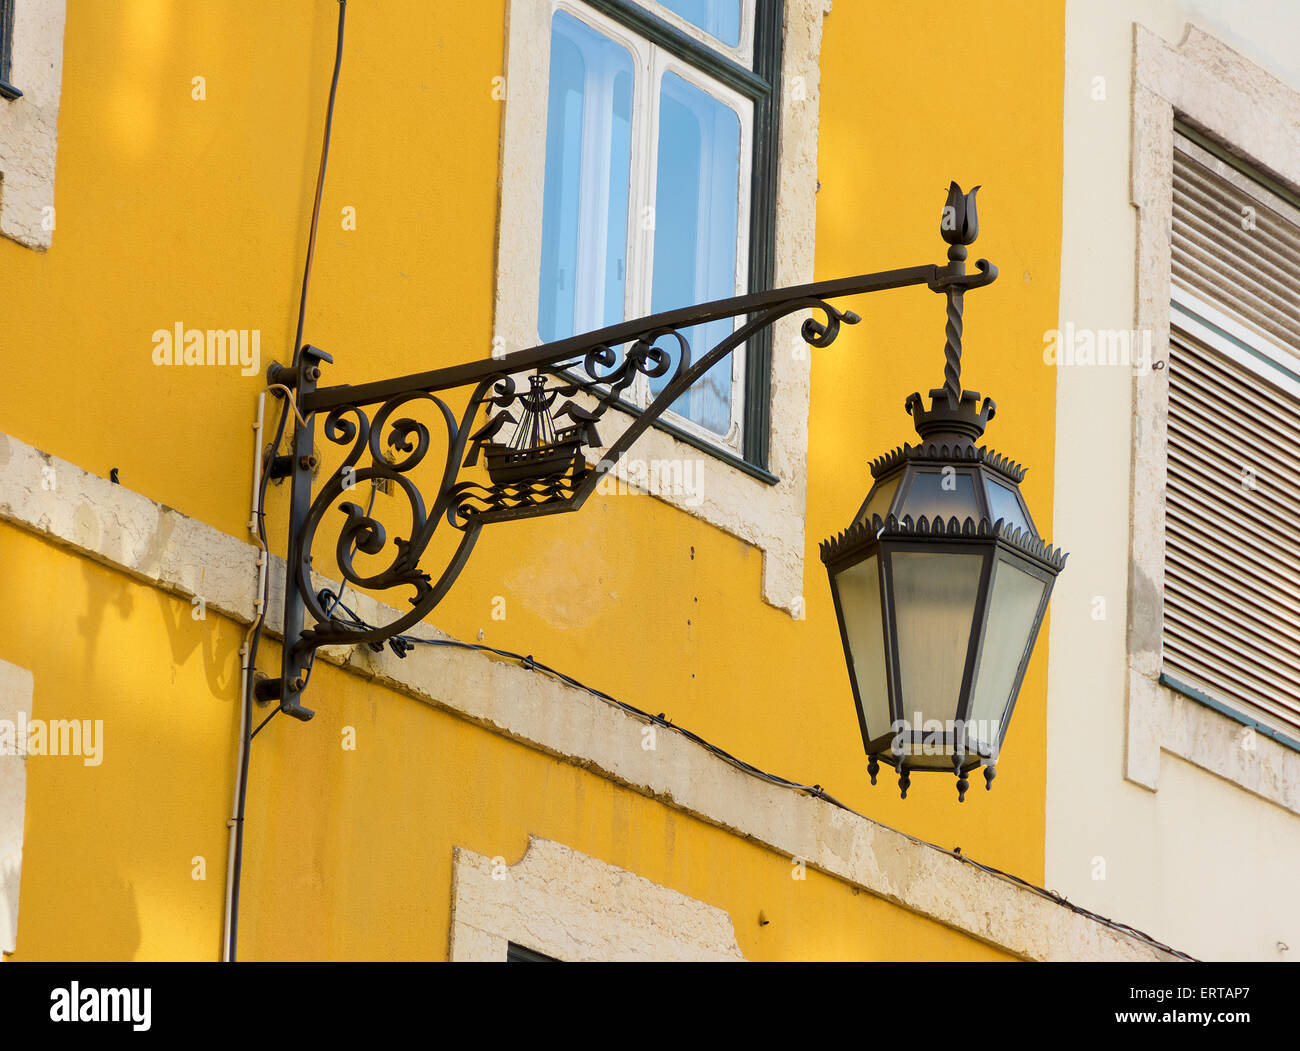 Black Wrought Stock Photos & Black Wrought Stock Images - Alamy